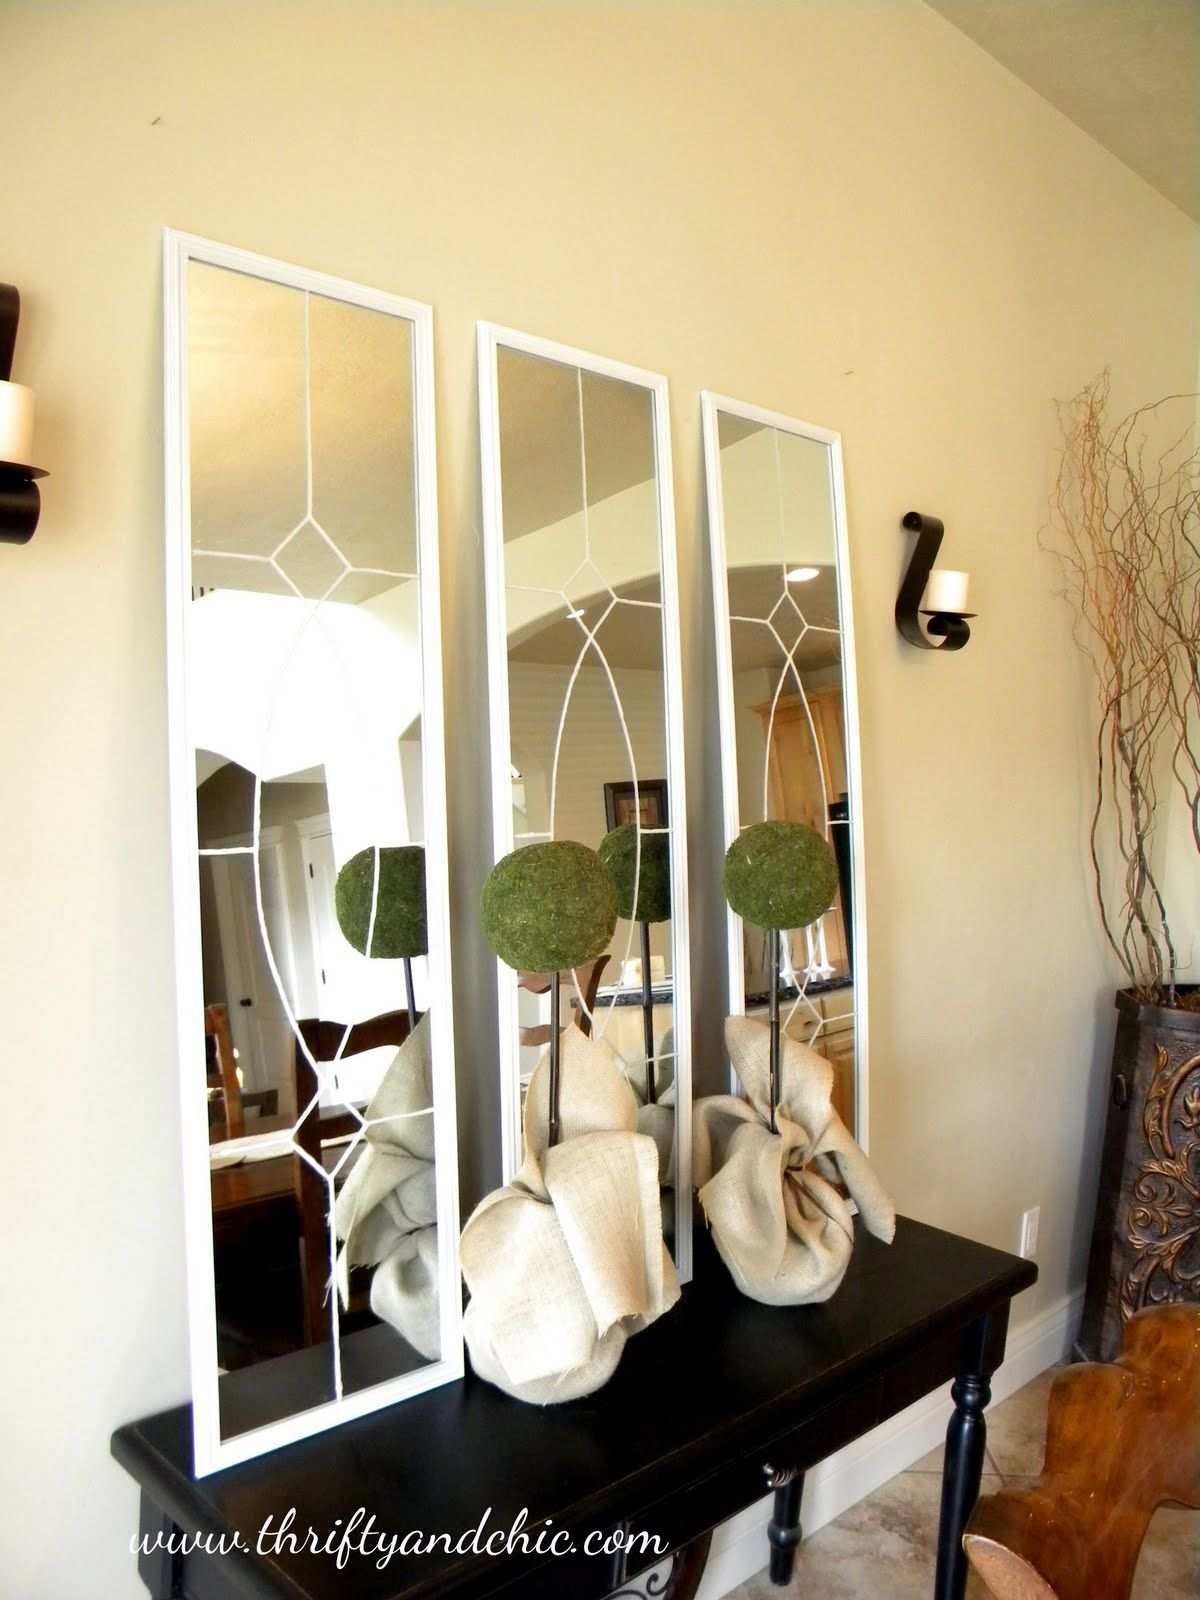 Knock-off Ballard Designs Garden District Mirrors | Walls and Diy ...